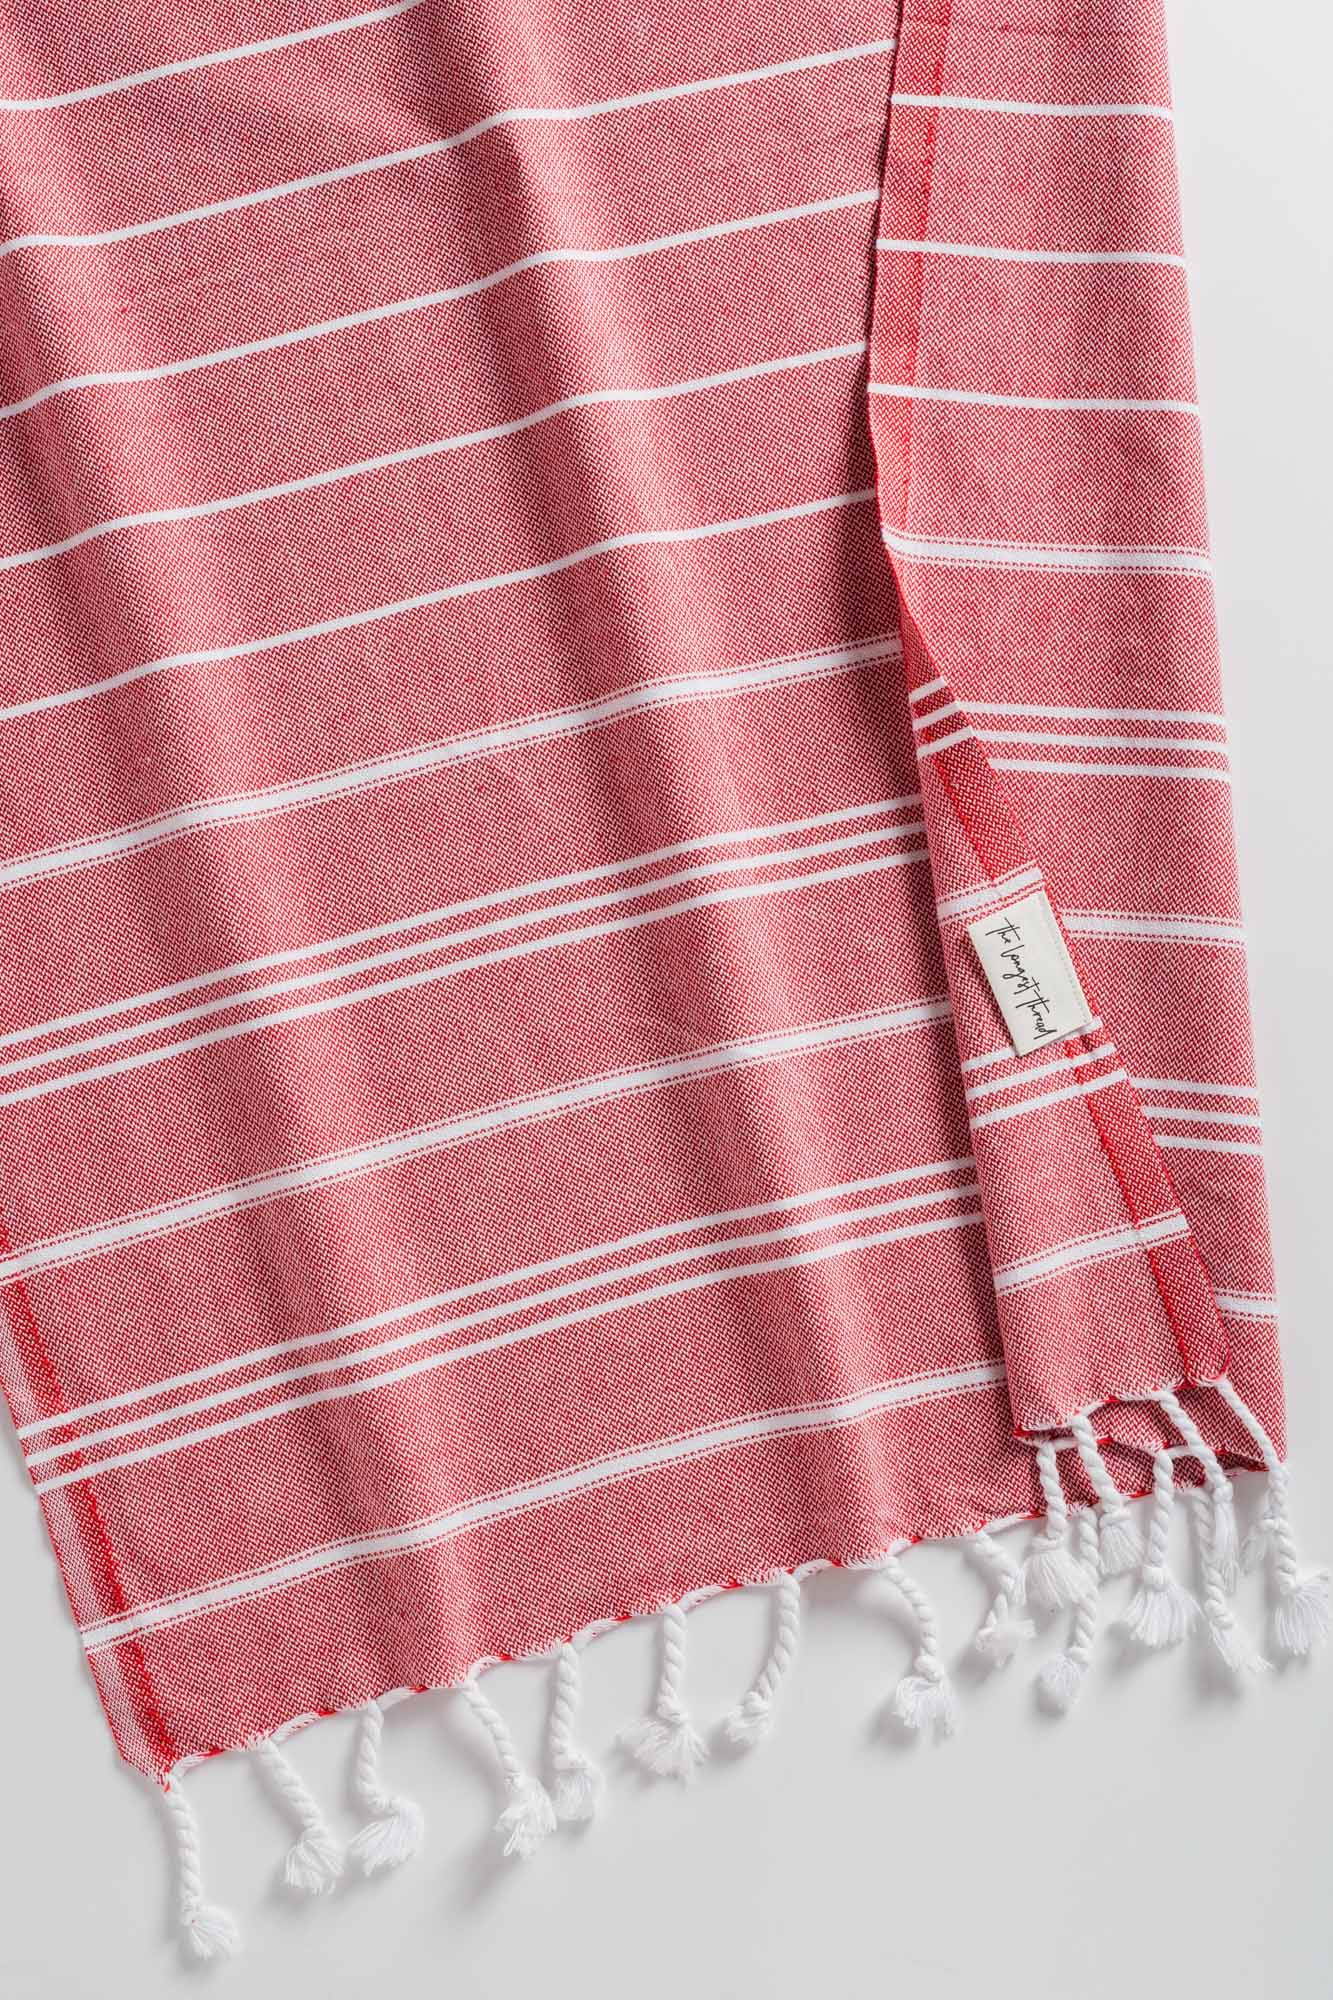 Basic XS Red Turkish Hand Towel